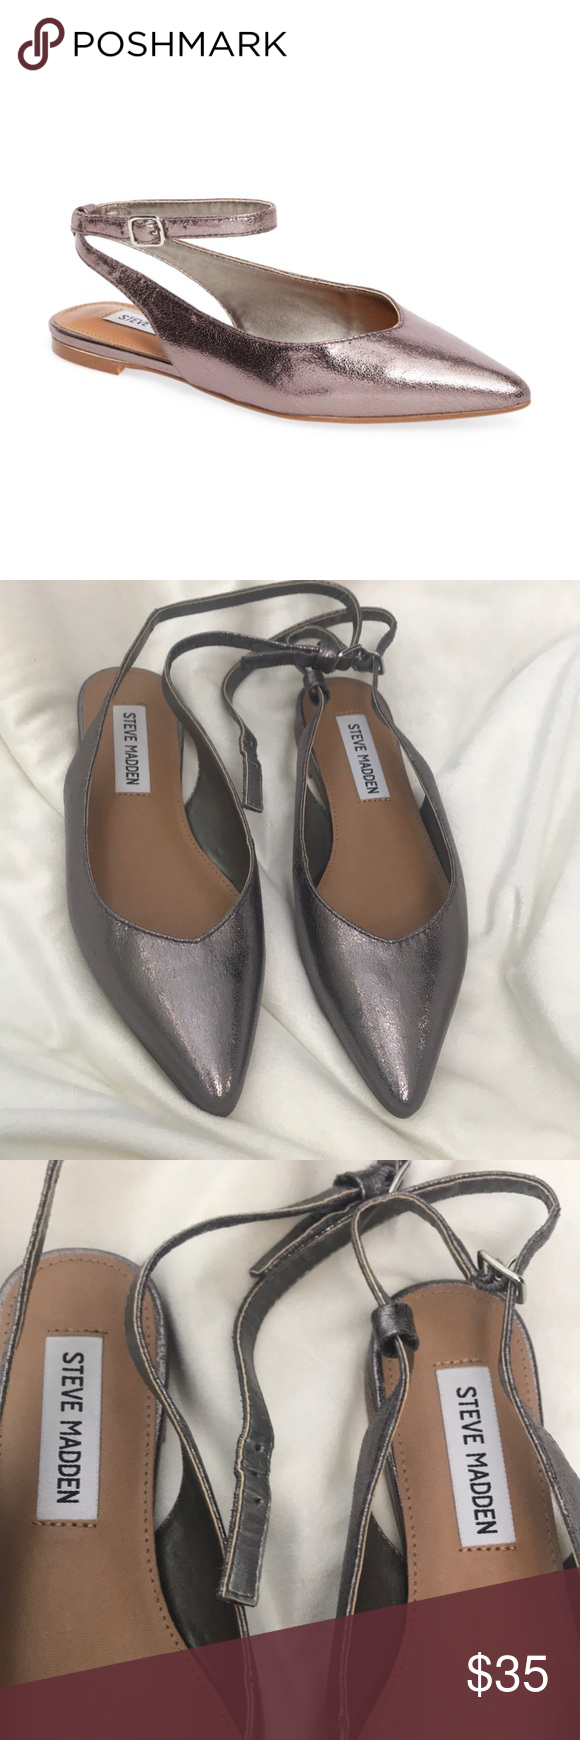 8e0cf82c496f4 Steve Madden Metallic Cupid Ankle Strap Flats EUC! Metallic silver color. Steve  Madden Shoes Flats & Loafers